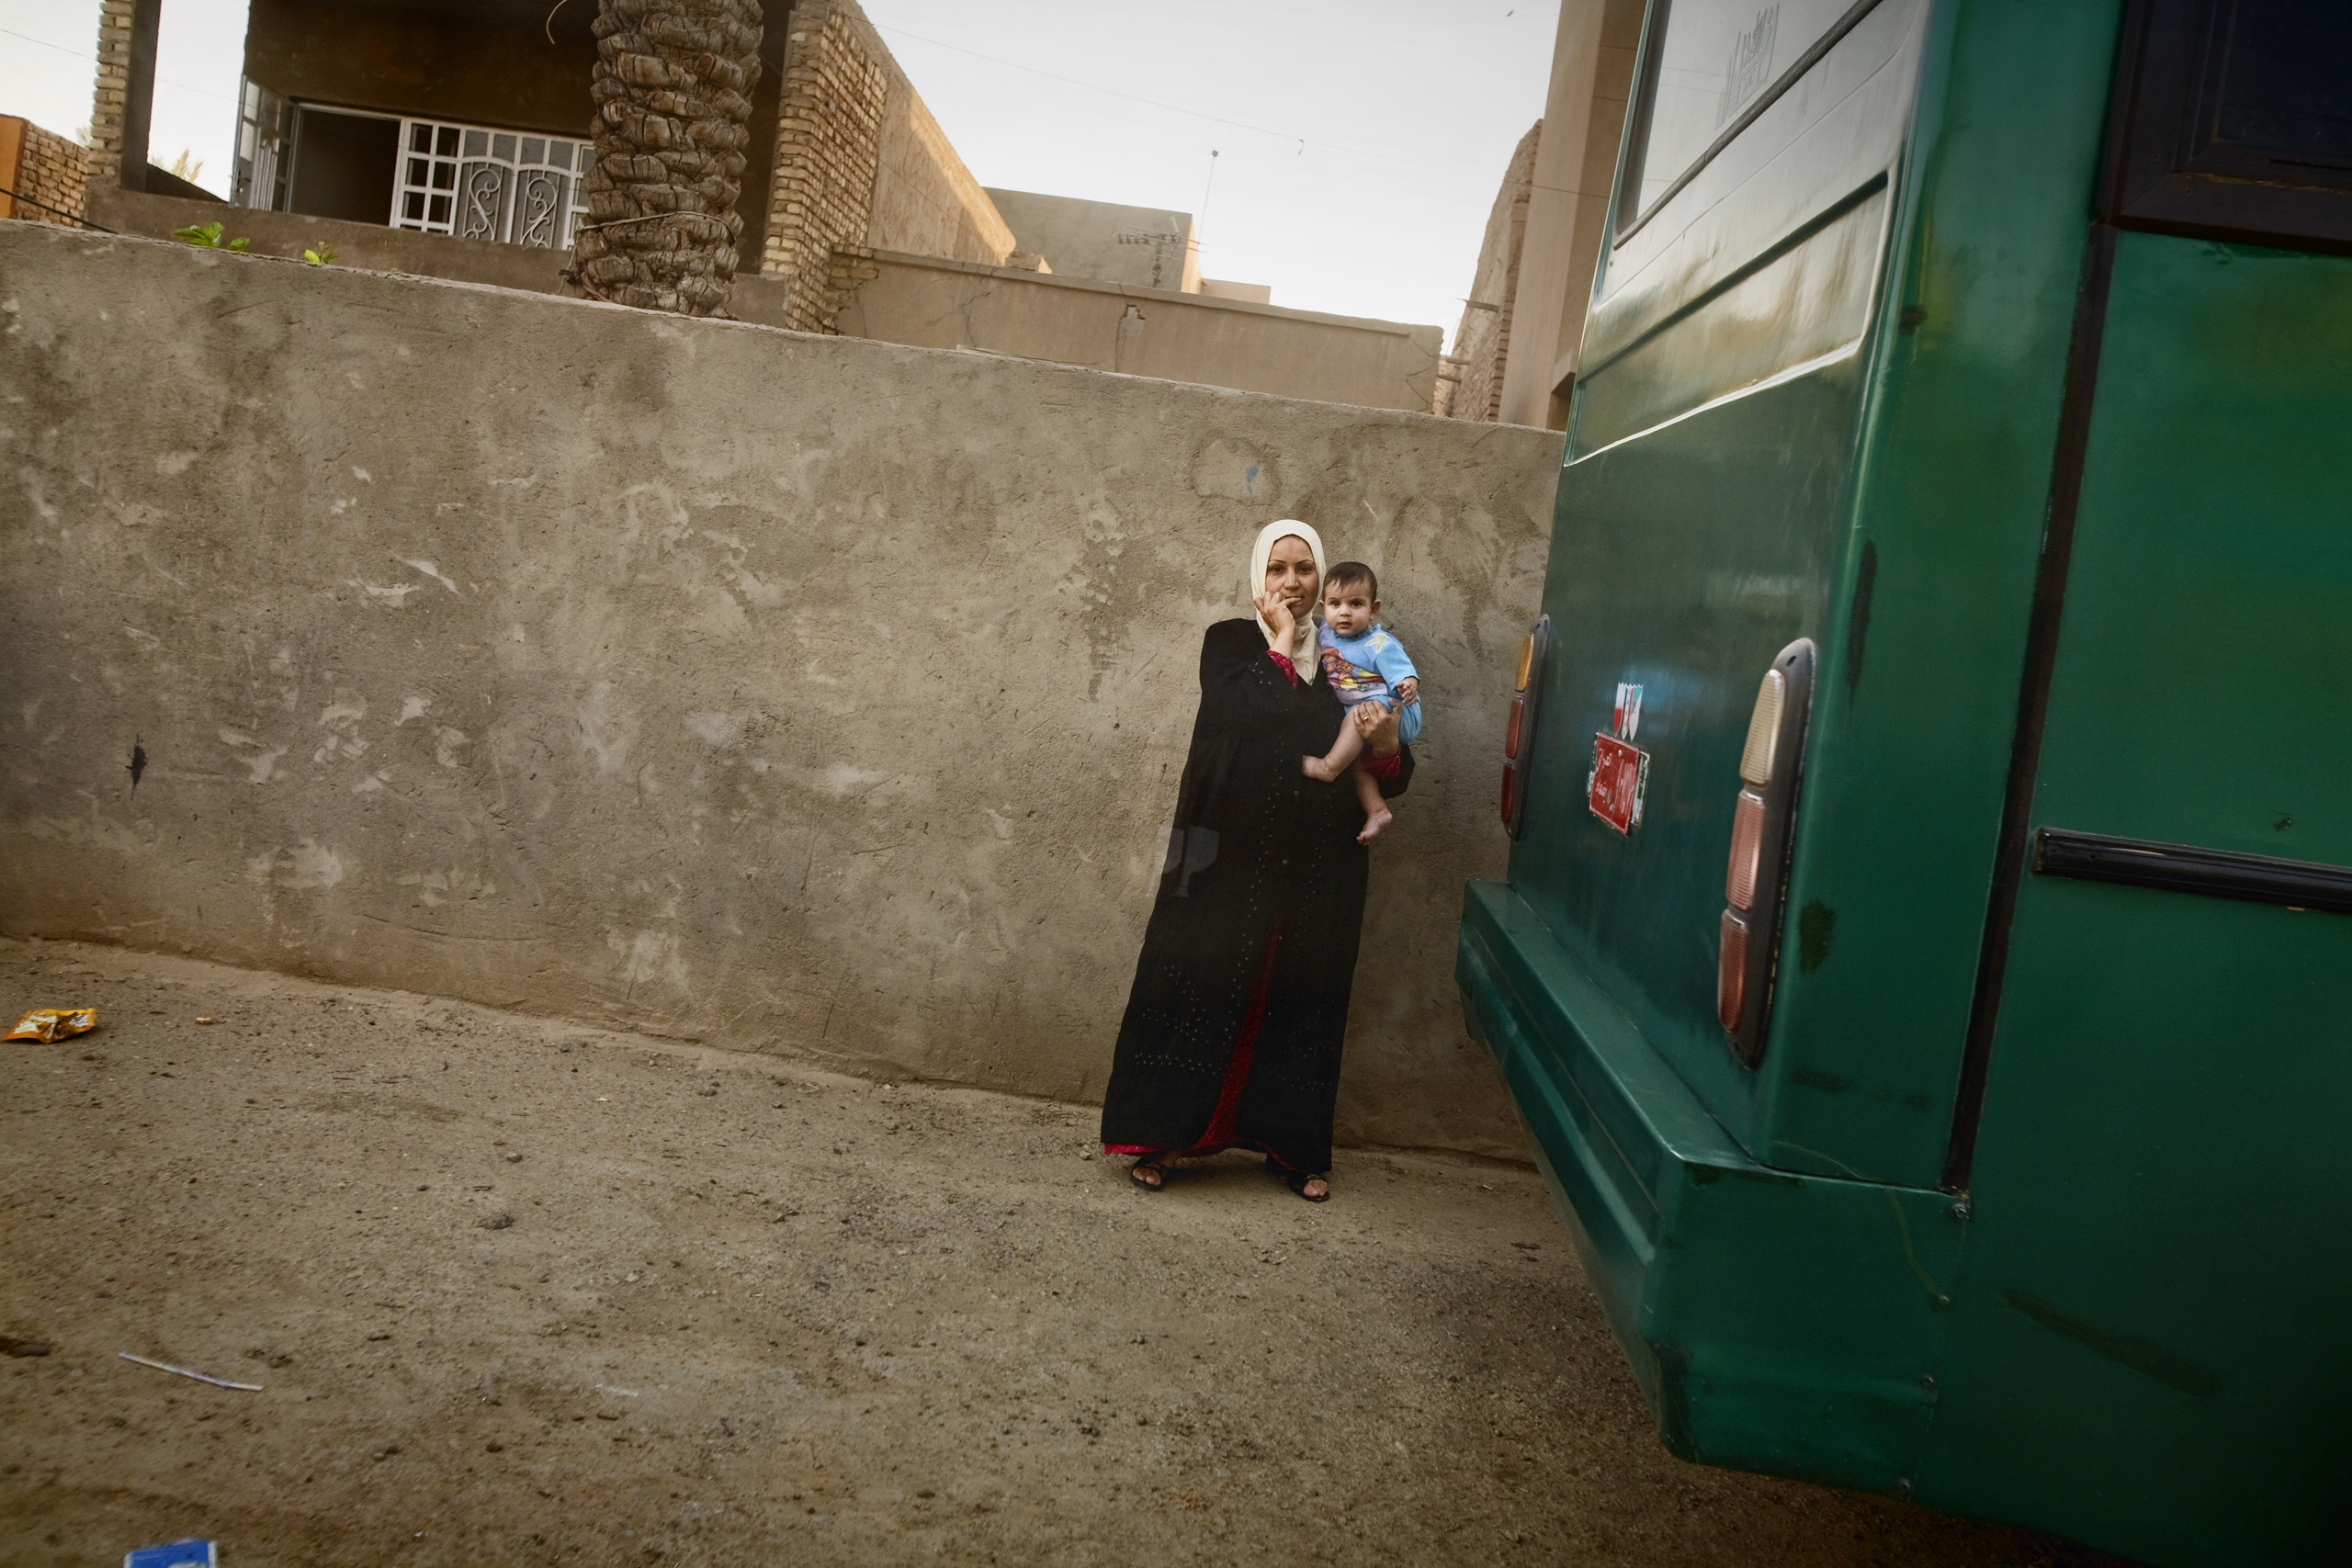 A woman holds her child outside her home in the al Doura district of Baghdad, Iraq, June 5, 2007. As sectarian tensions increased, life in Doura became increasingly dangerous when Iraqi National Policemen, former members of the pro-Shiite Badr Brigades, set up a check point outside the neighborhood and began shooting Sunni civilians, including women and children.